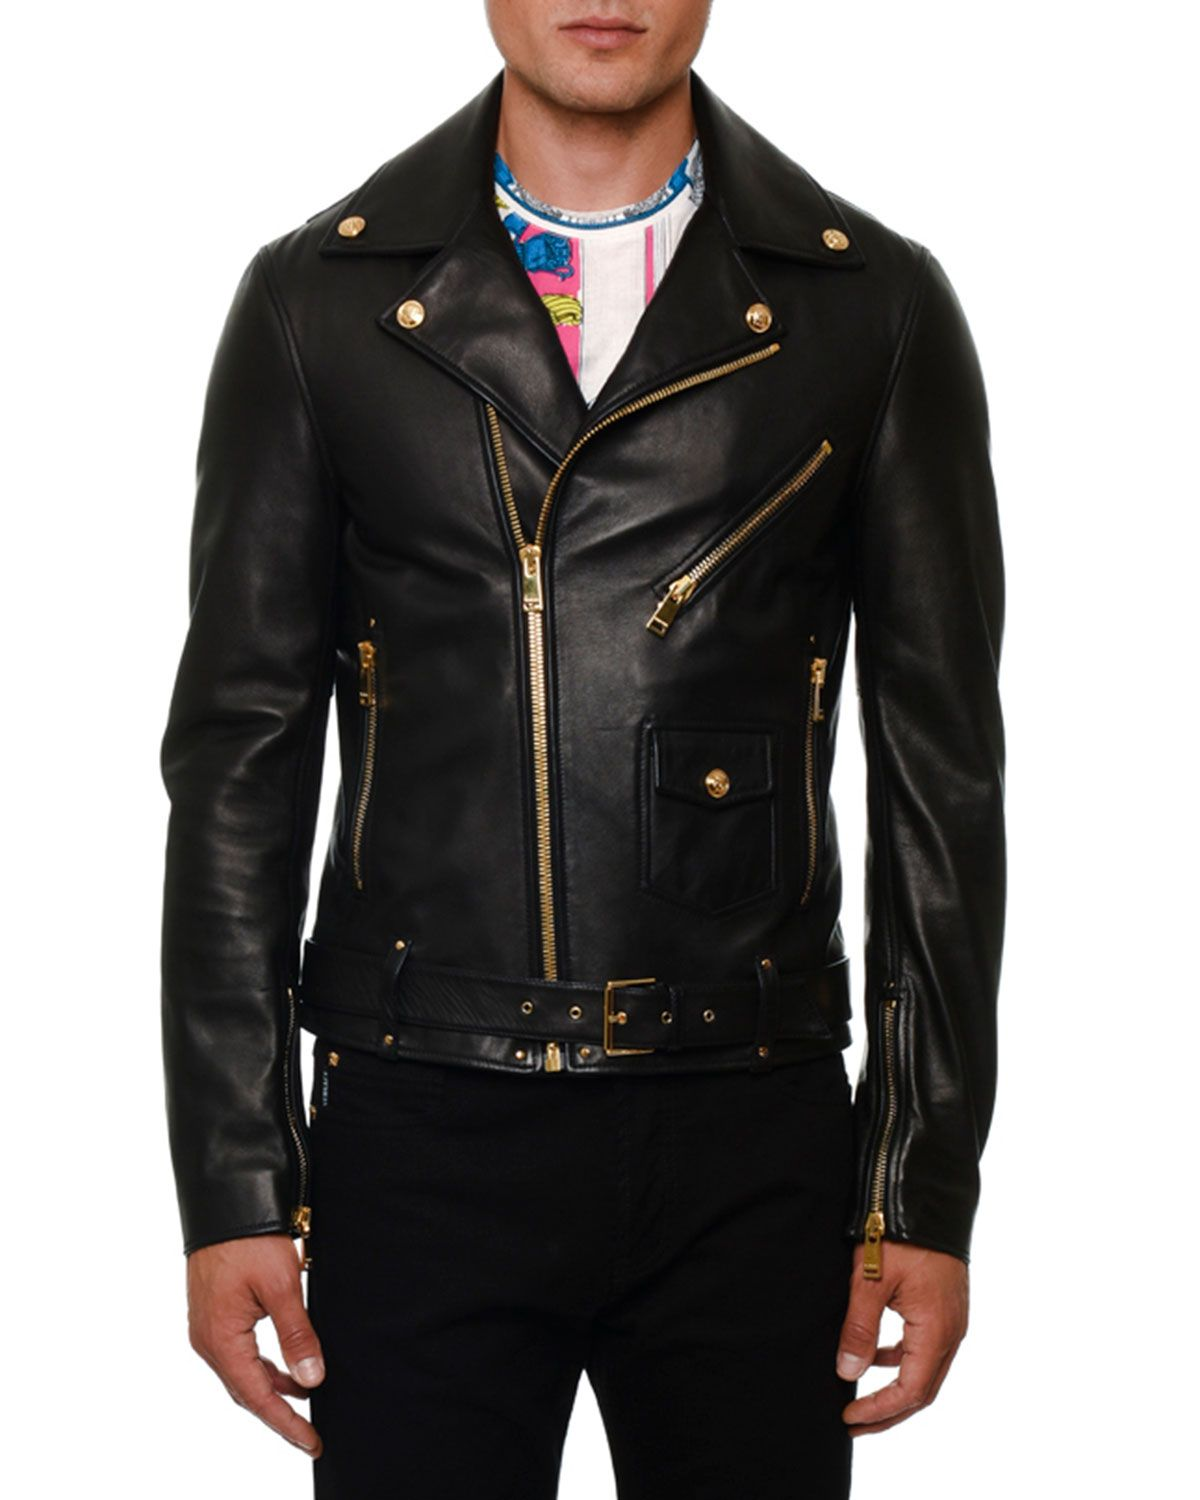 Pin By Lajuria Handmade Leather Colle On Lajuria Handmade Mens Leather Shoes Mens Leather Jacket Biker Leather Jacket Leather Jacket Men [ 1500 x 1200 Pixel ]